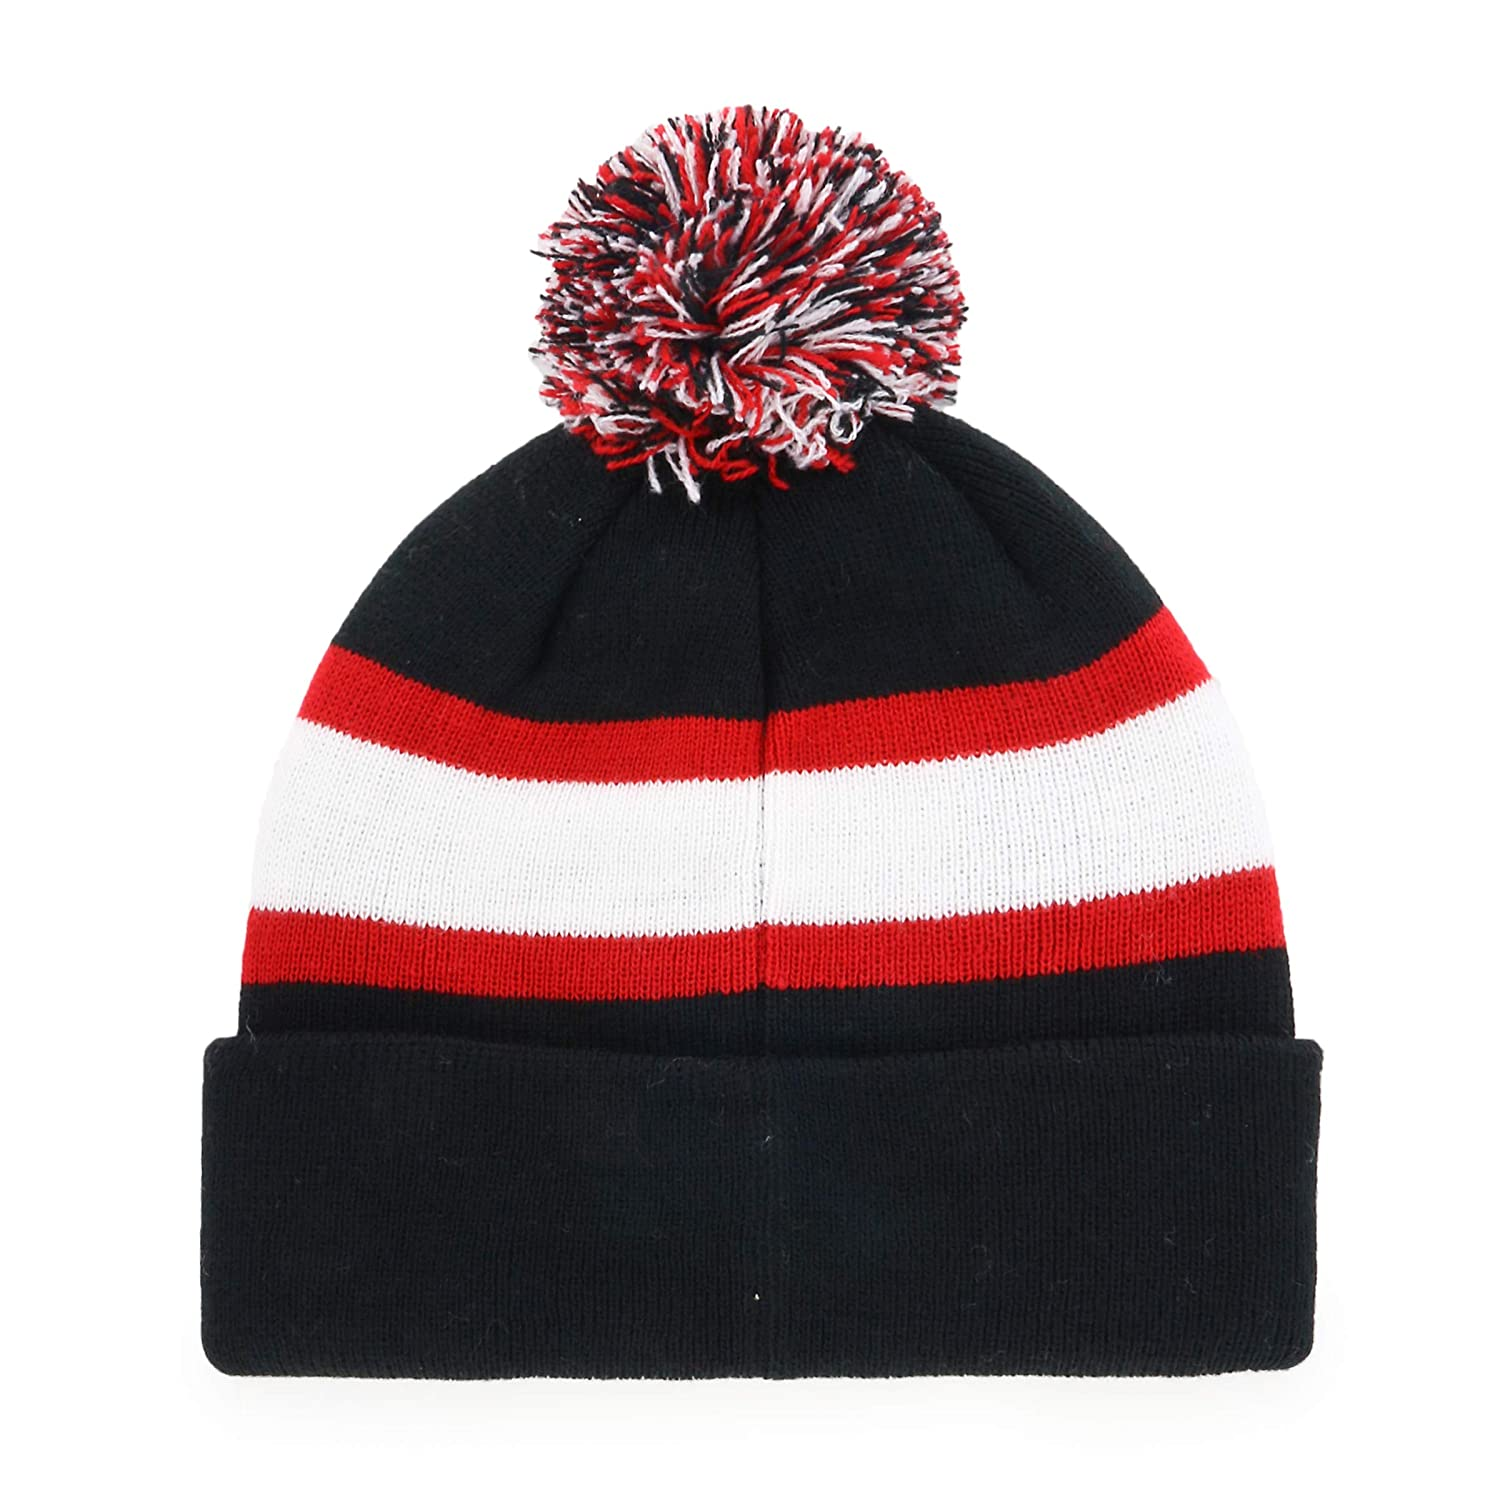 OTS NBA Youth Rush Down Cuff Knit Hat with Pom